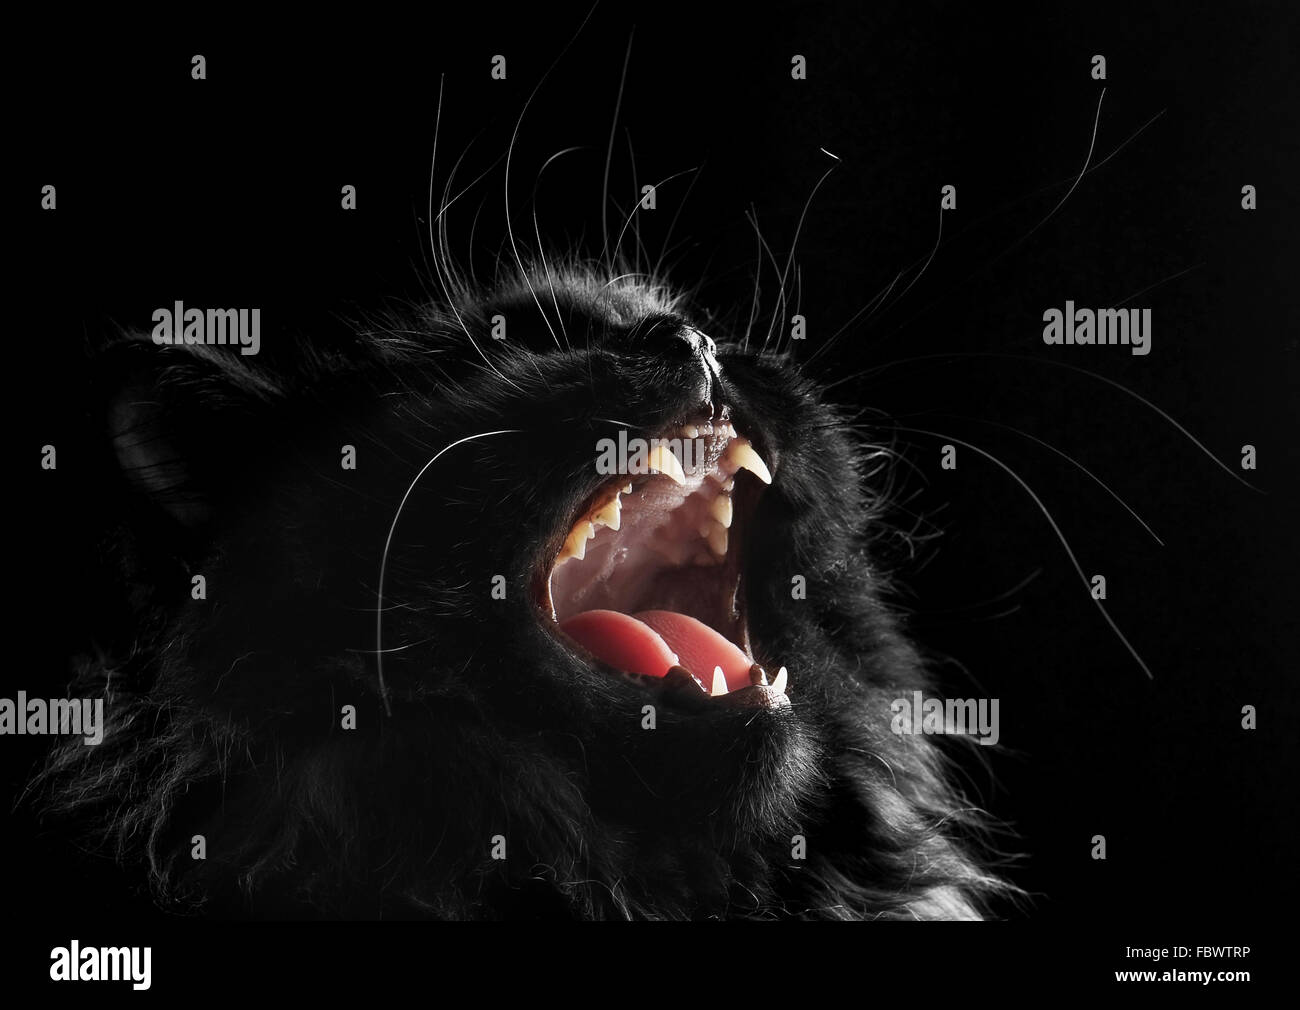 black persian cat on black background - Stock Image